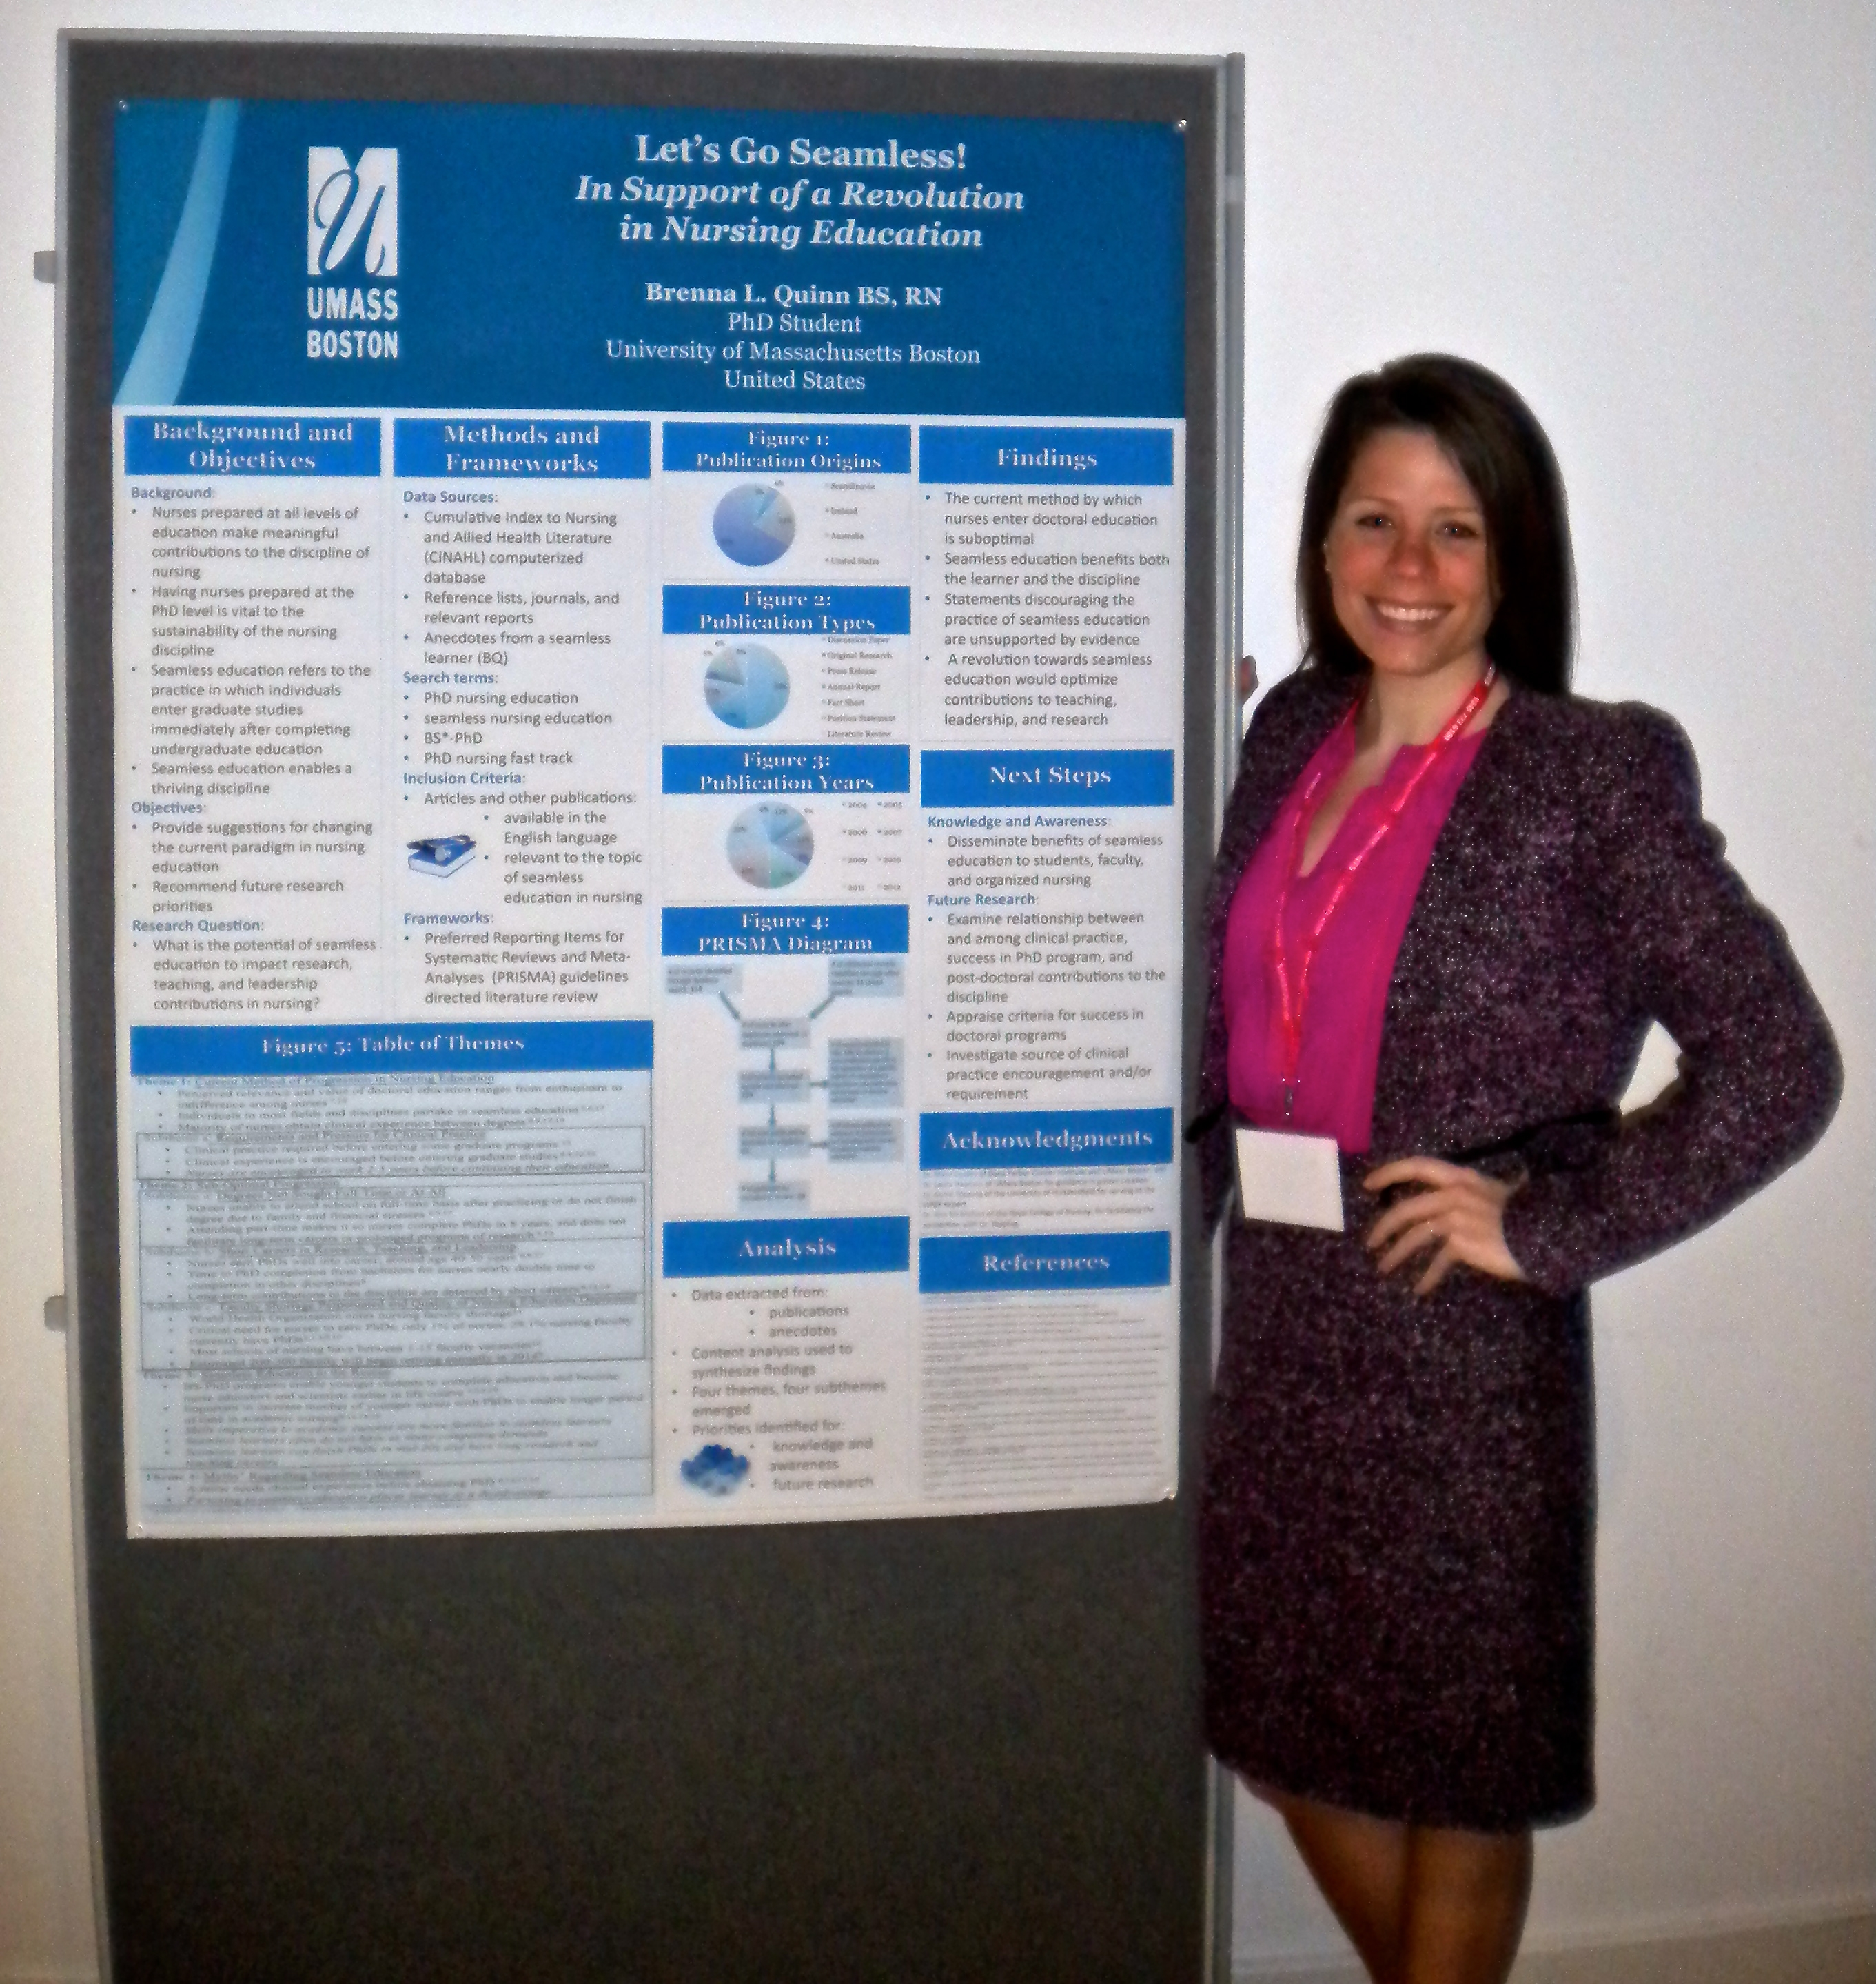 Doctoral student Brenna Quinn presenting a poster at the International Nursing Research Conference in Belfast, Northern Ireland, March 2013.